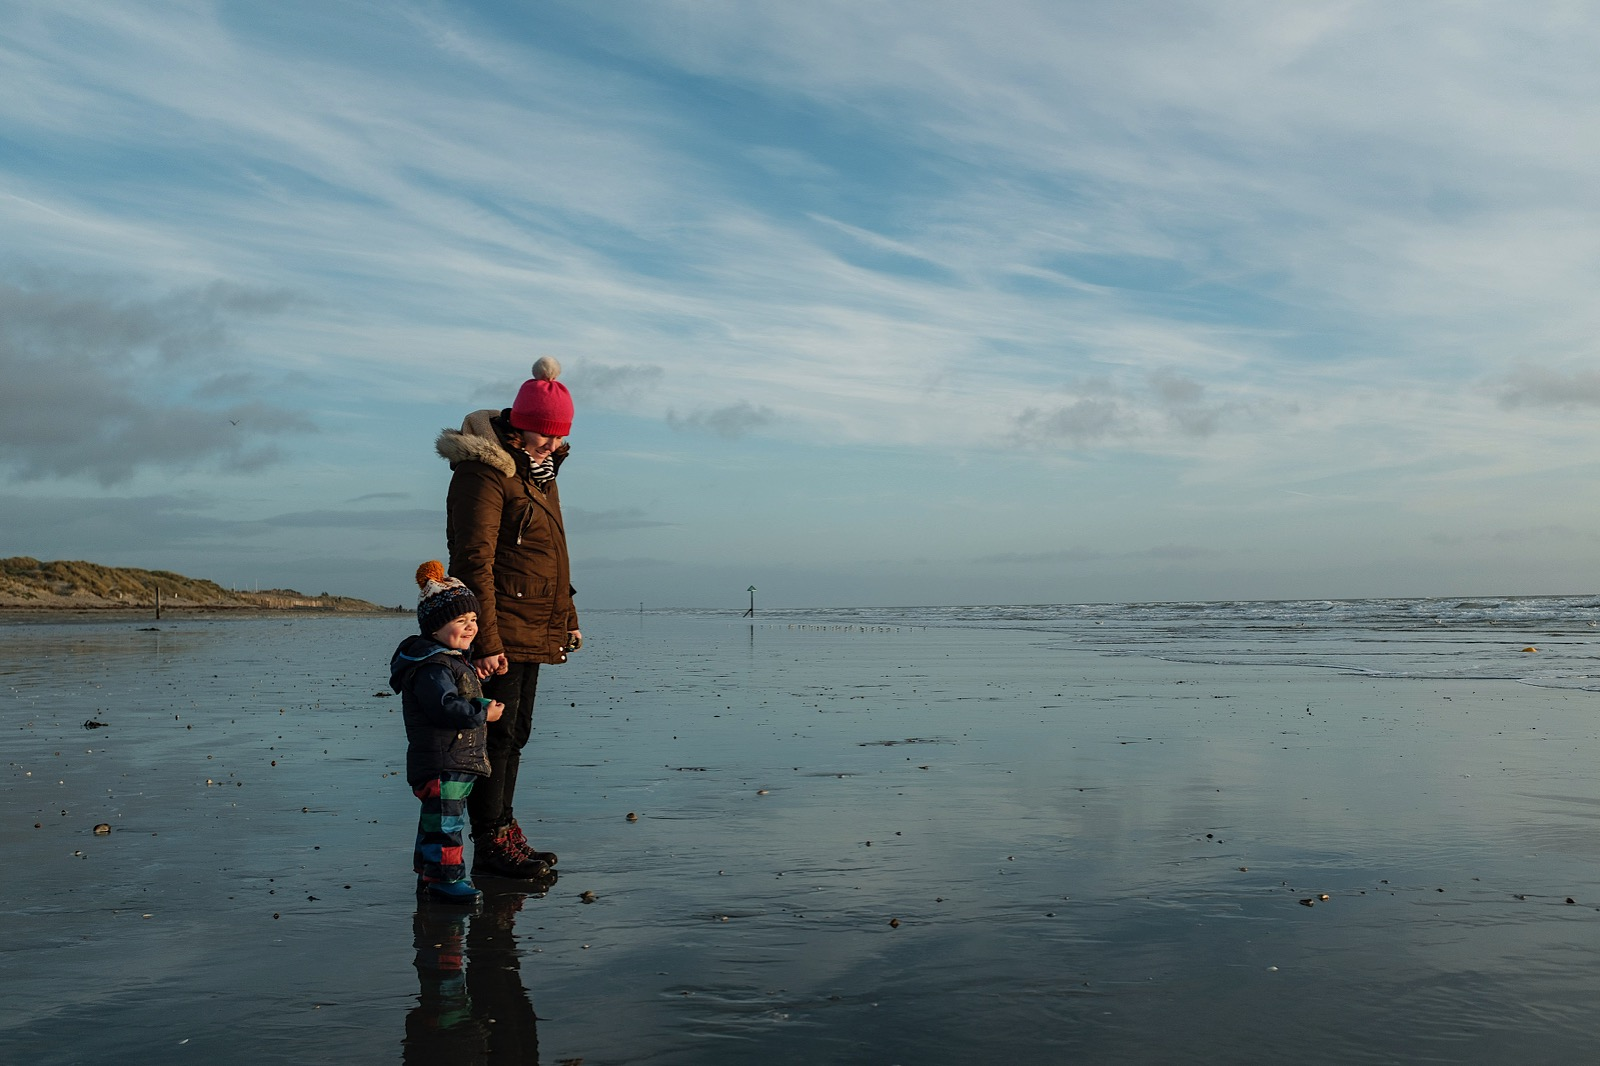 Mother and young child stood on wet beach in winter clothing